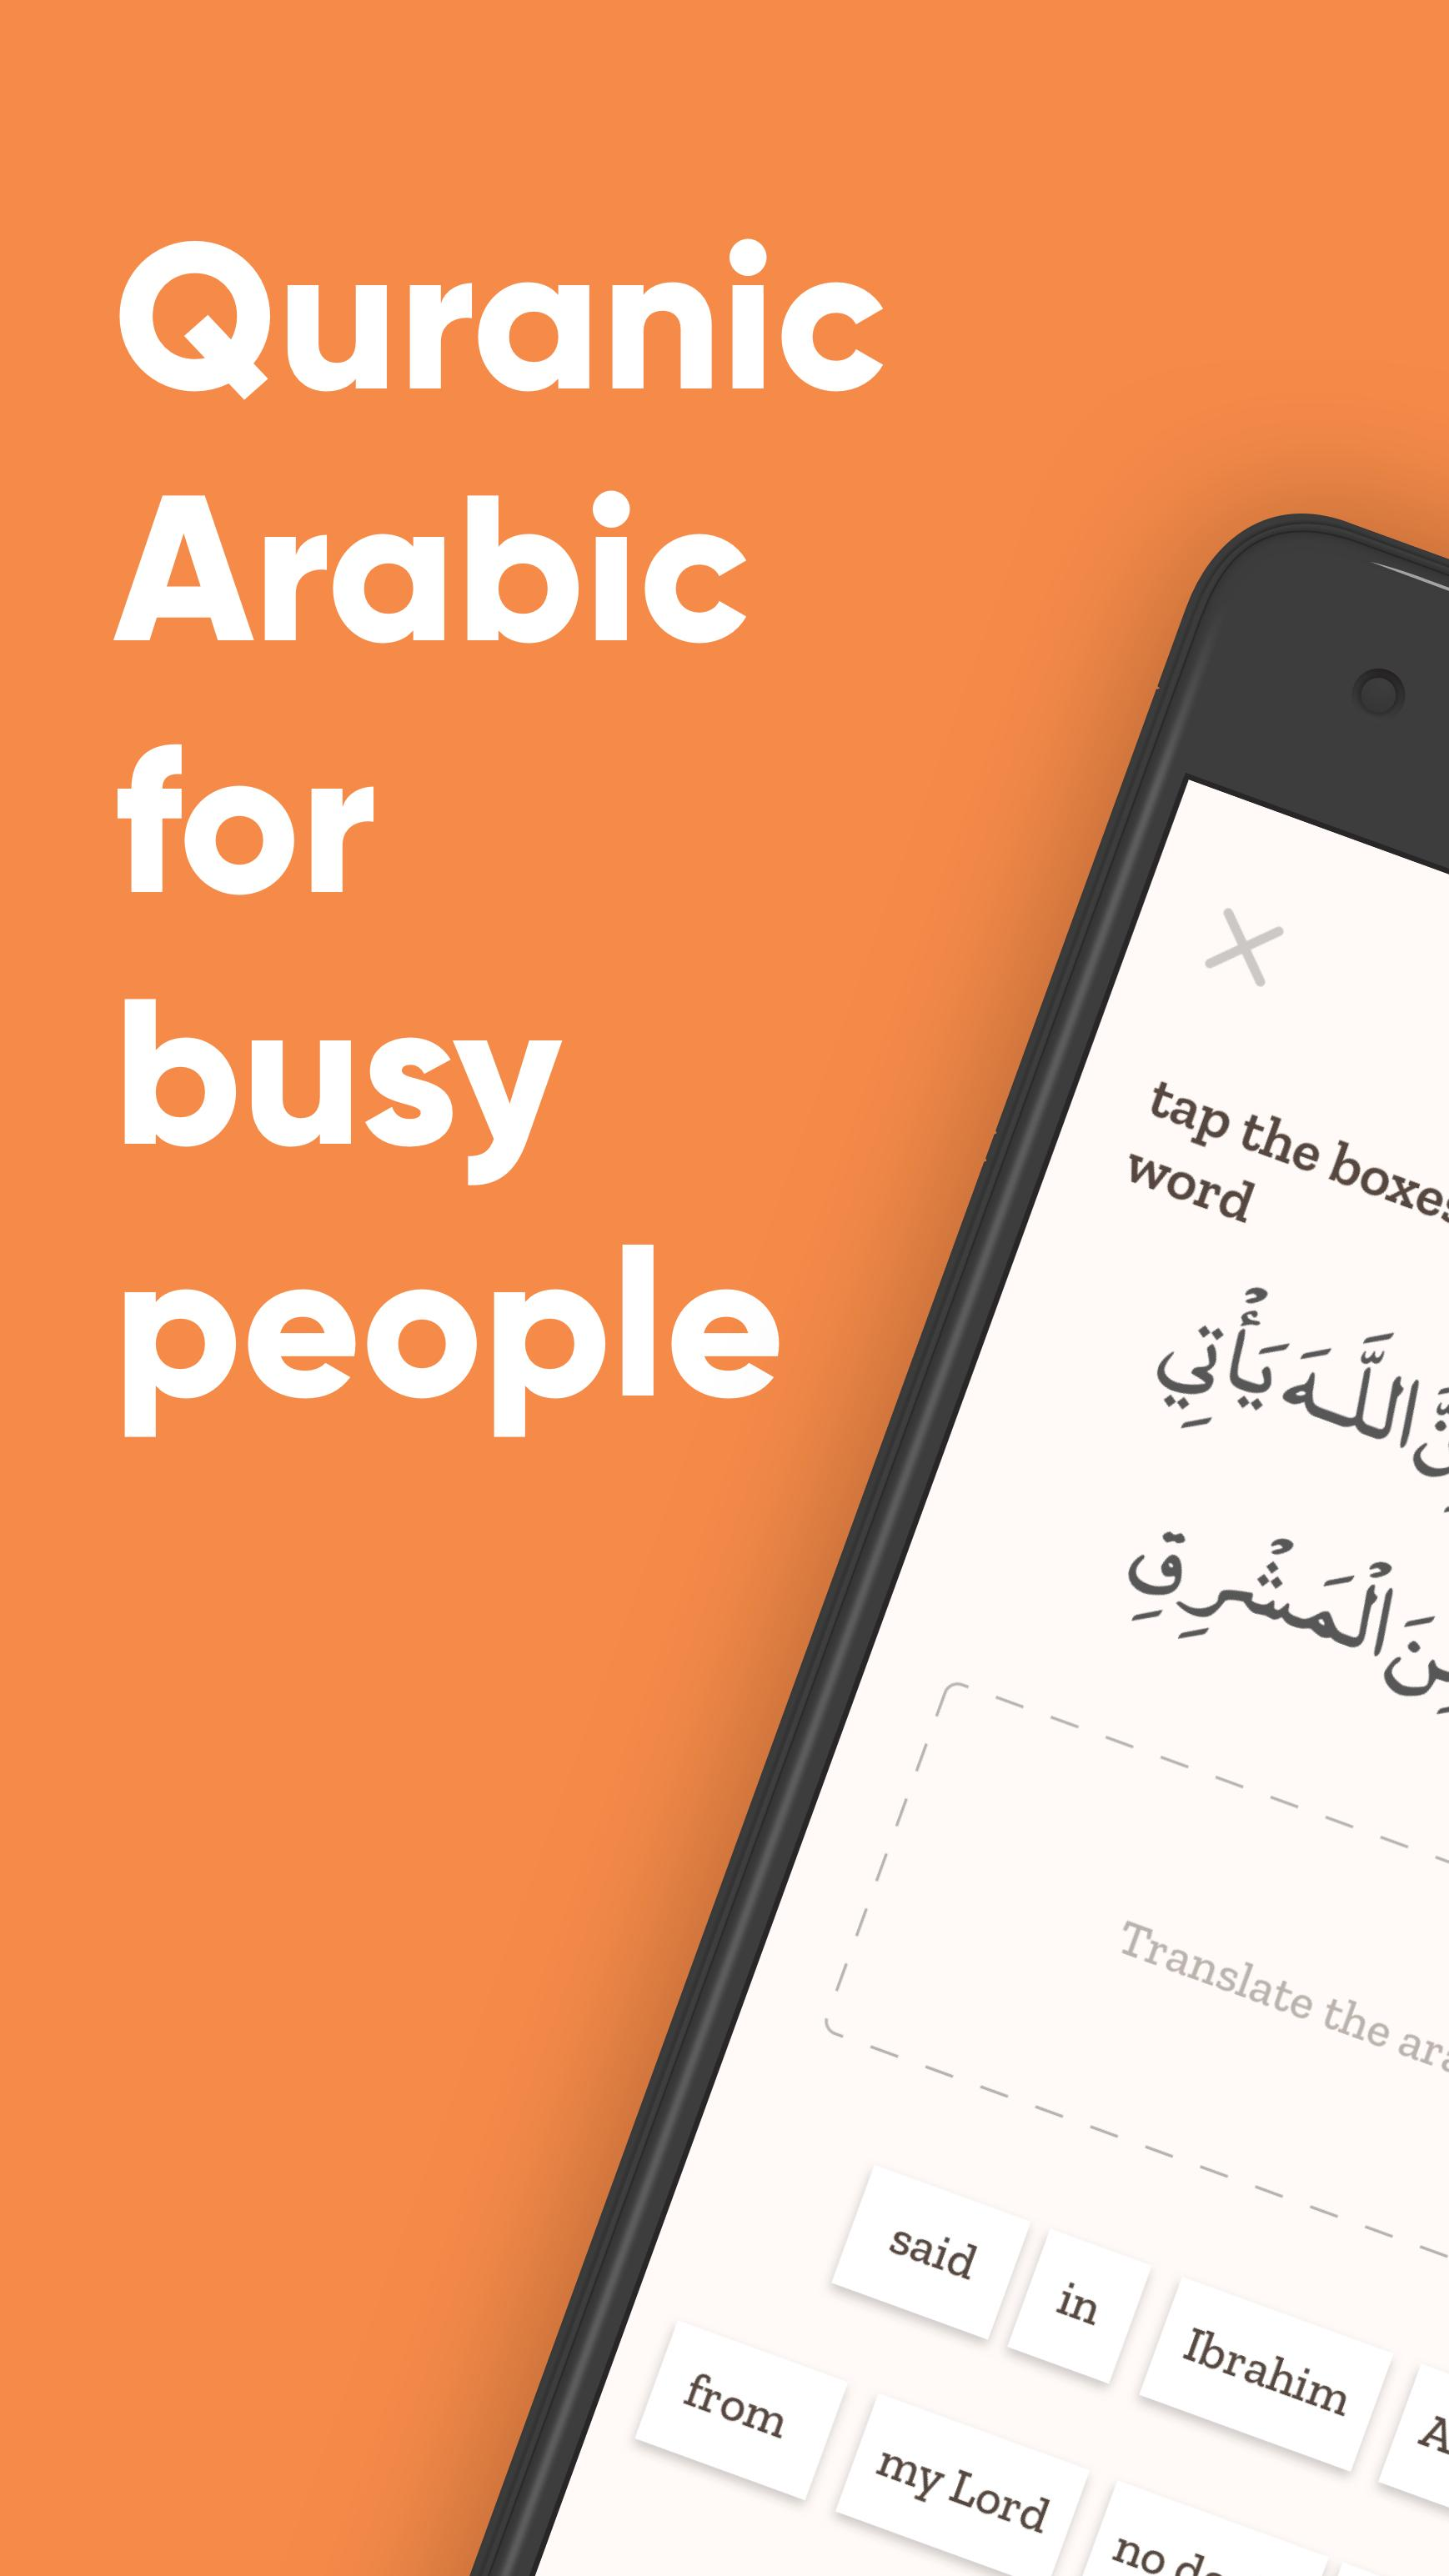 Quranic for Android - APK Download